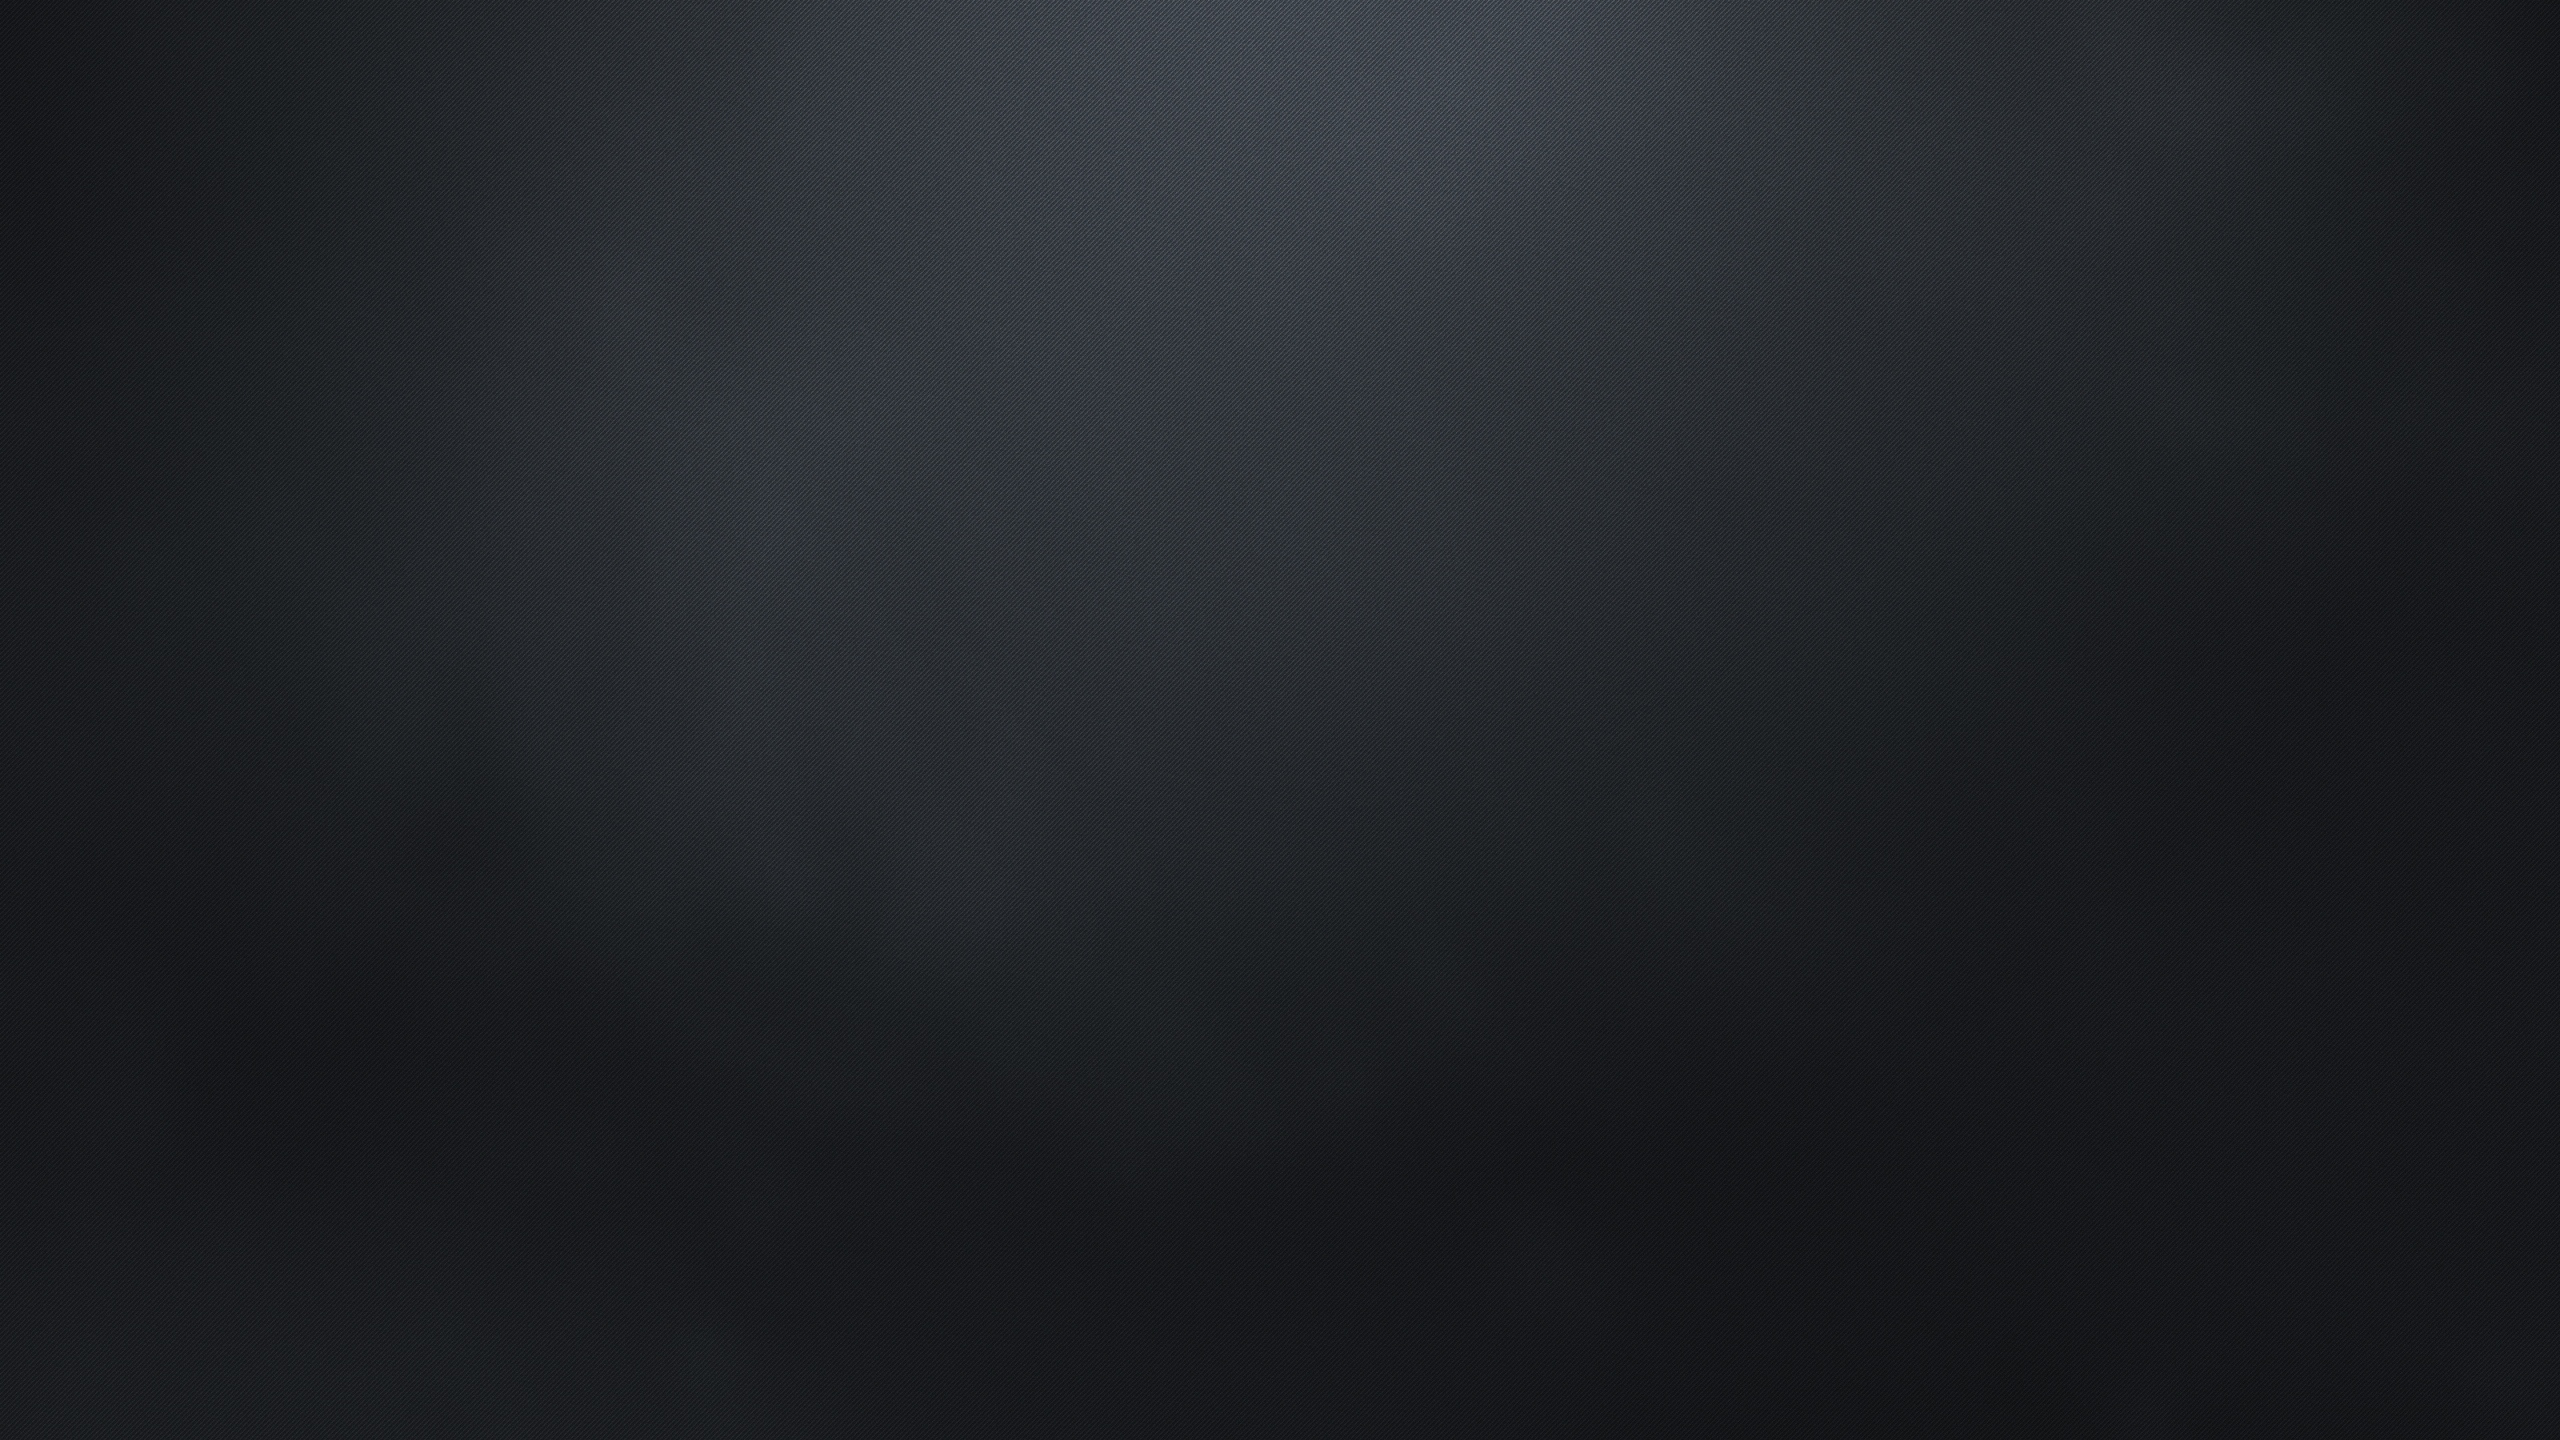 Dark Surface Wallpaper